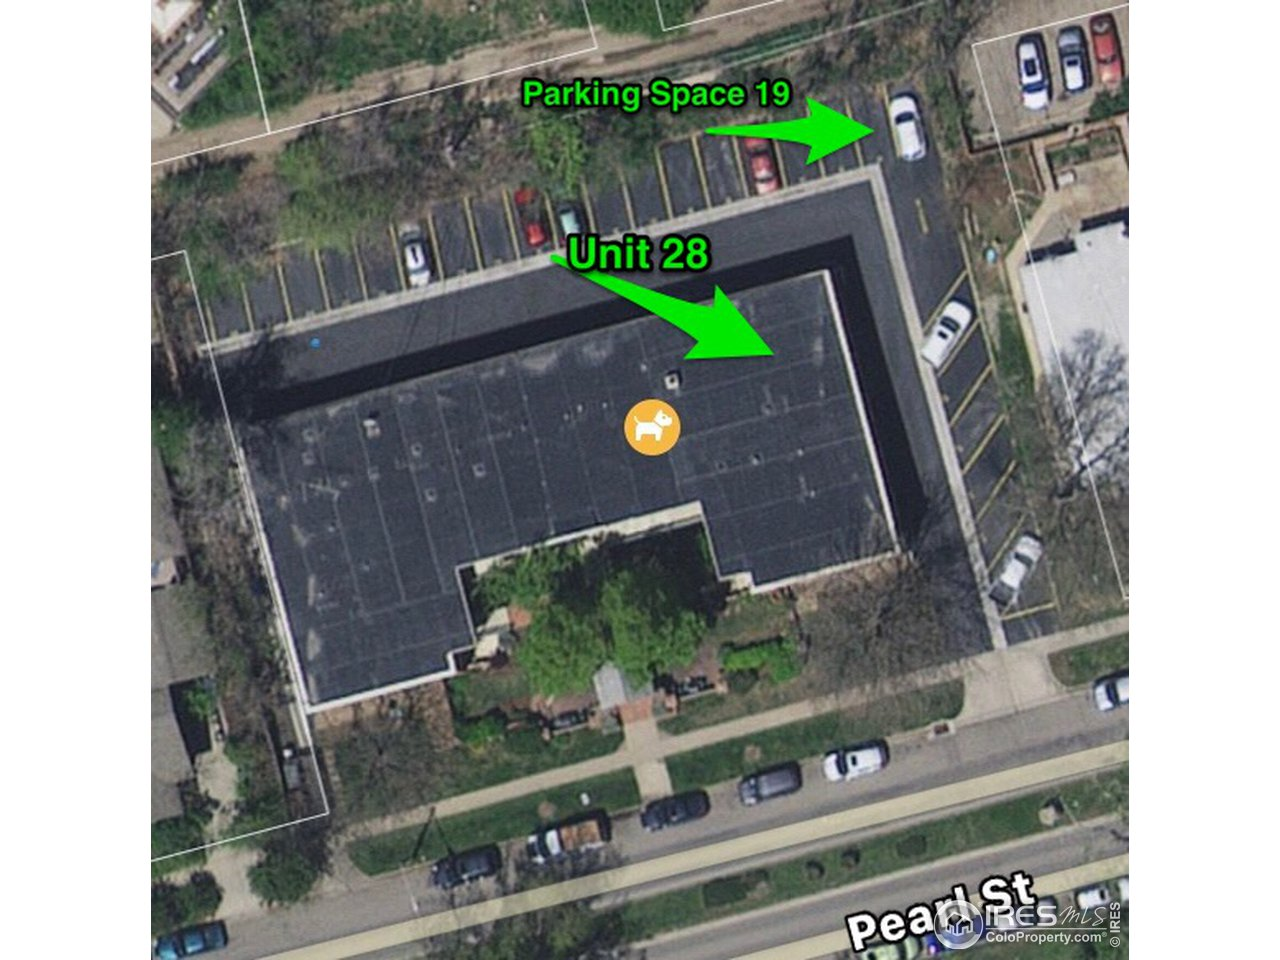 Unit 28 and parking spot locations